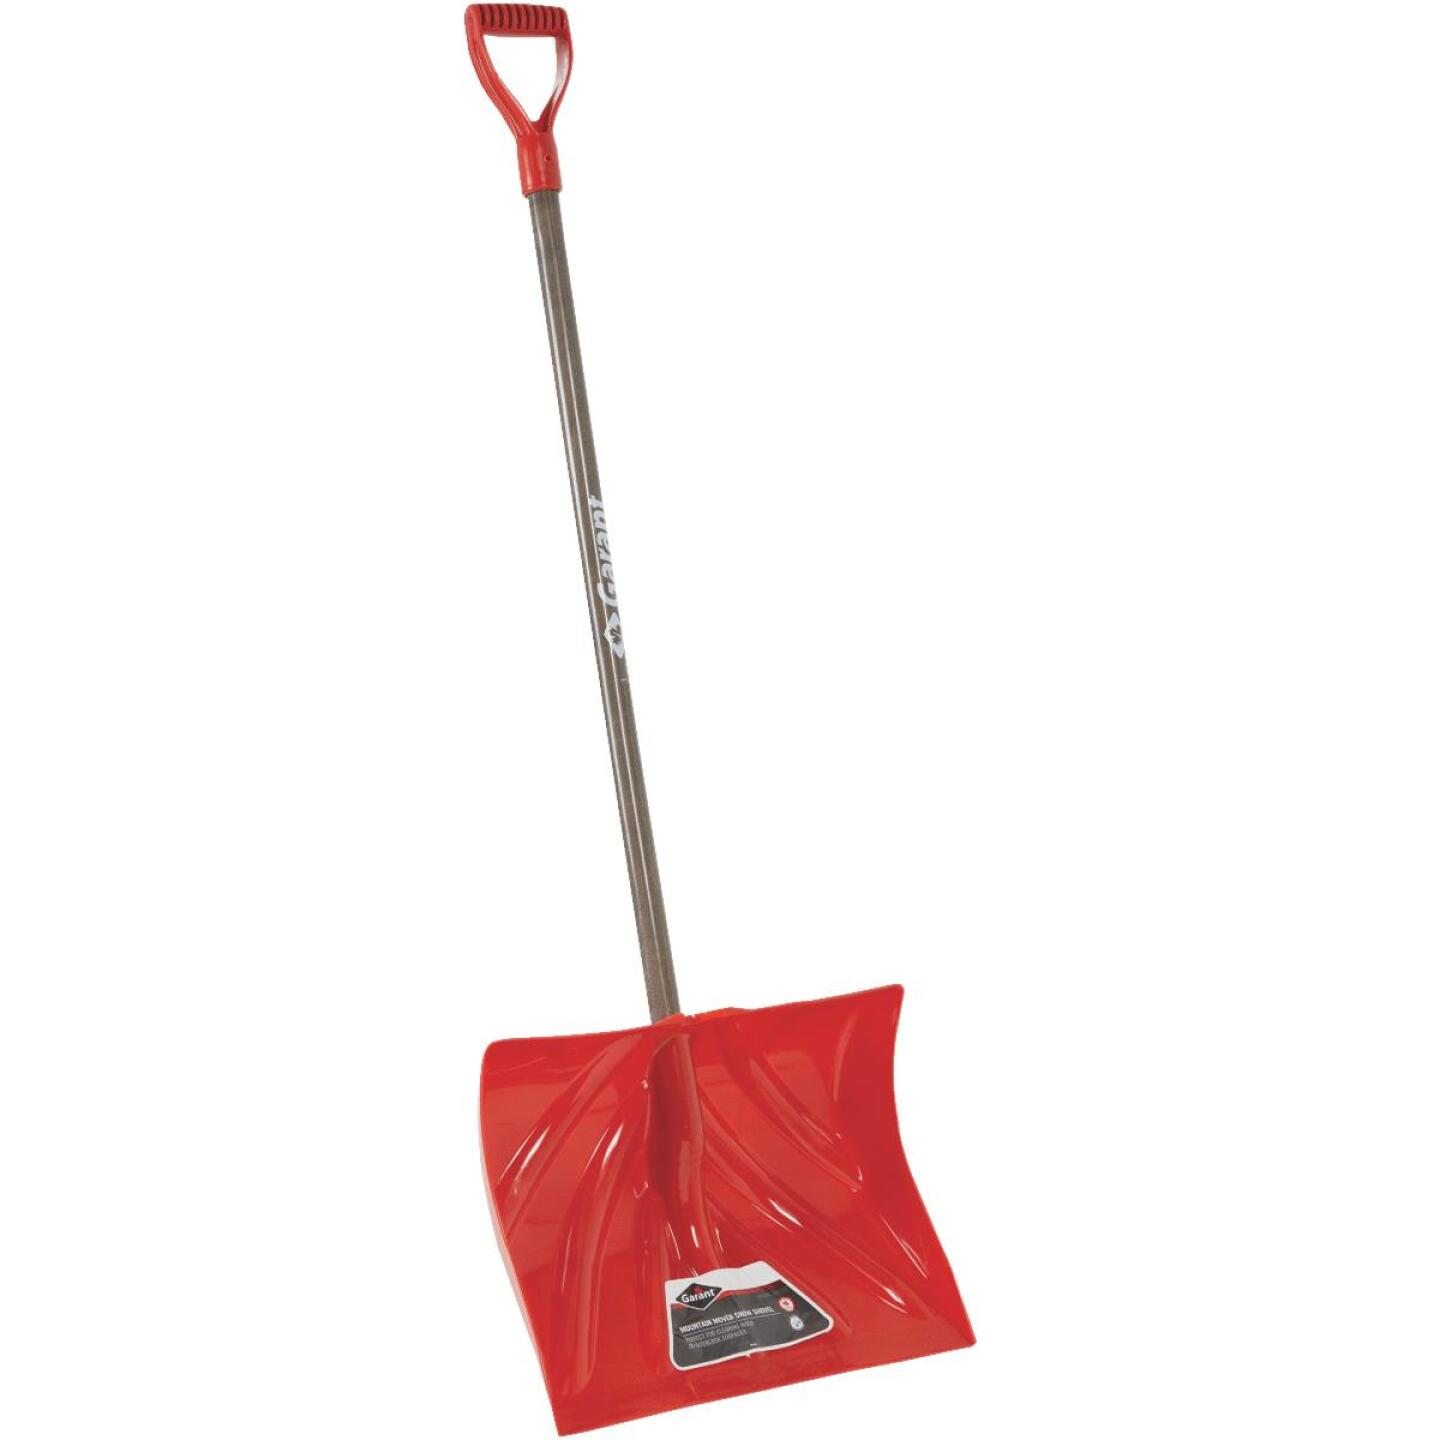 Garant Nordic 18 In. Poly Snow Shovel & Pusher with 42.25 In. Wood Handle Image 1